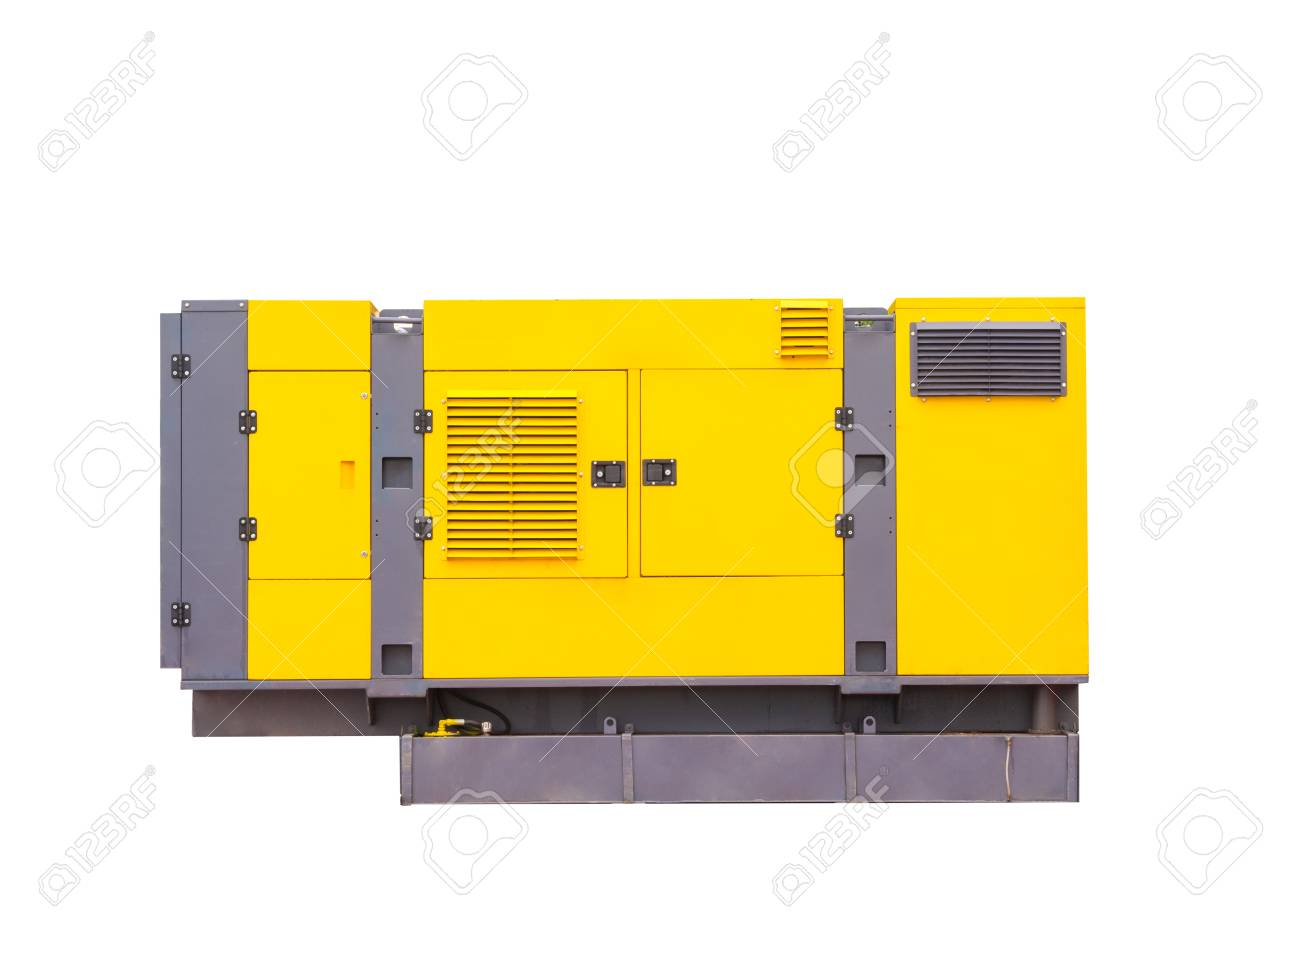 hight resolution of mobile diesel generator for emergency electric power isolated on white background clipping path